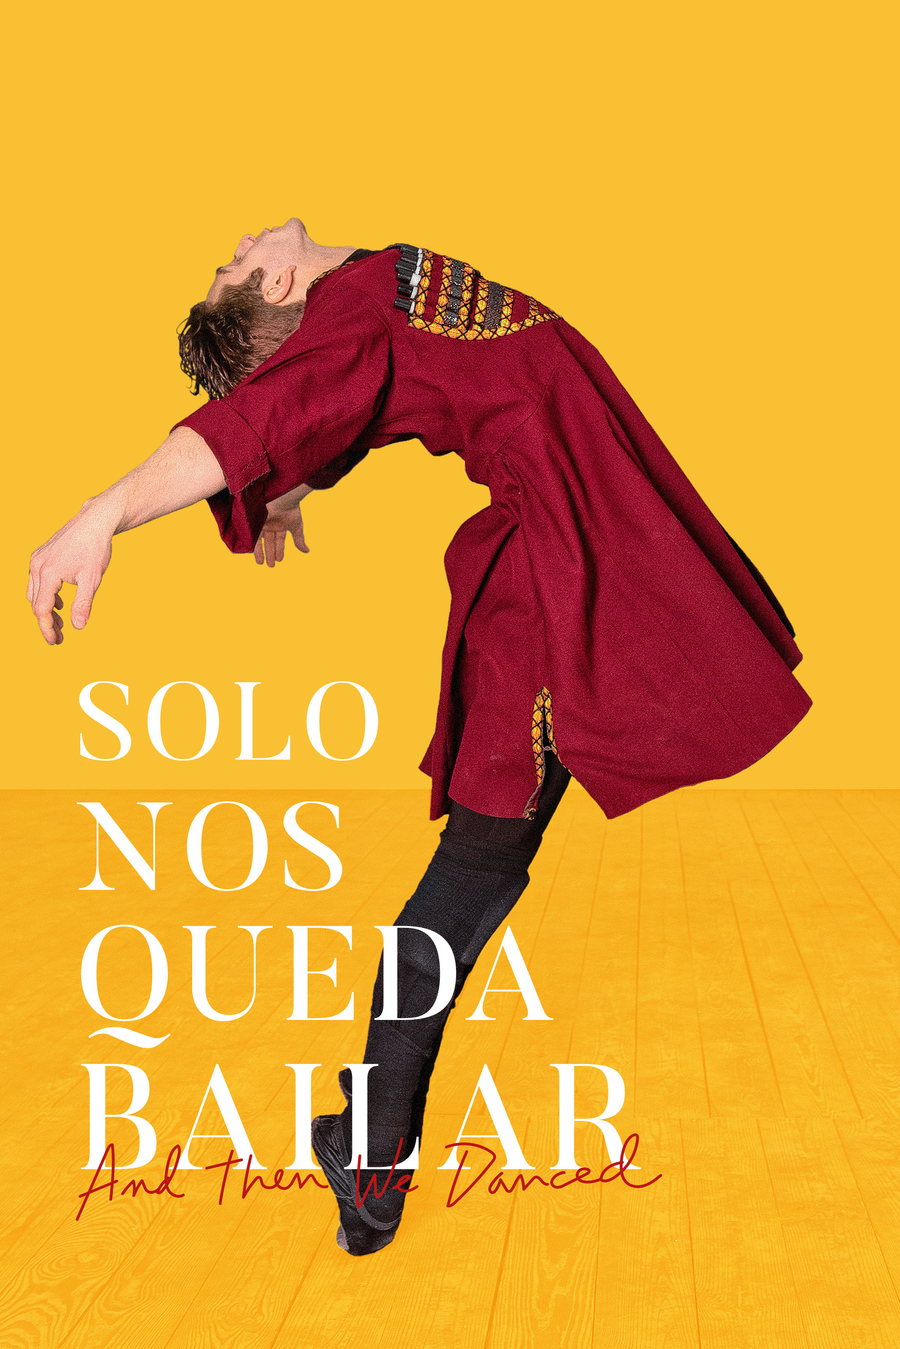 Solo nos queda bailar (And Then We Danced)